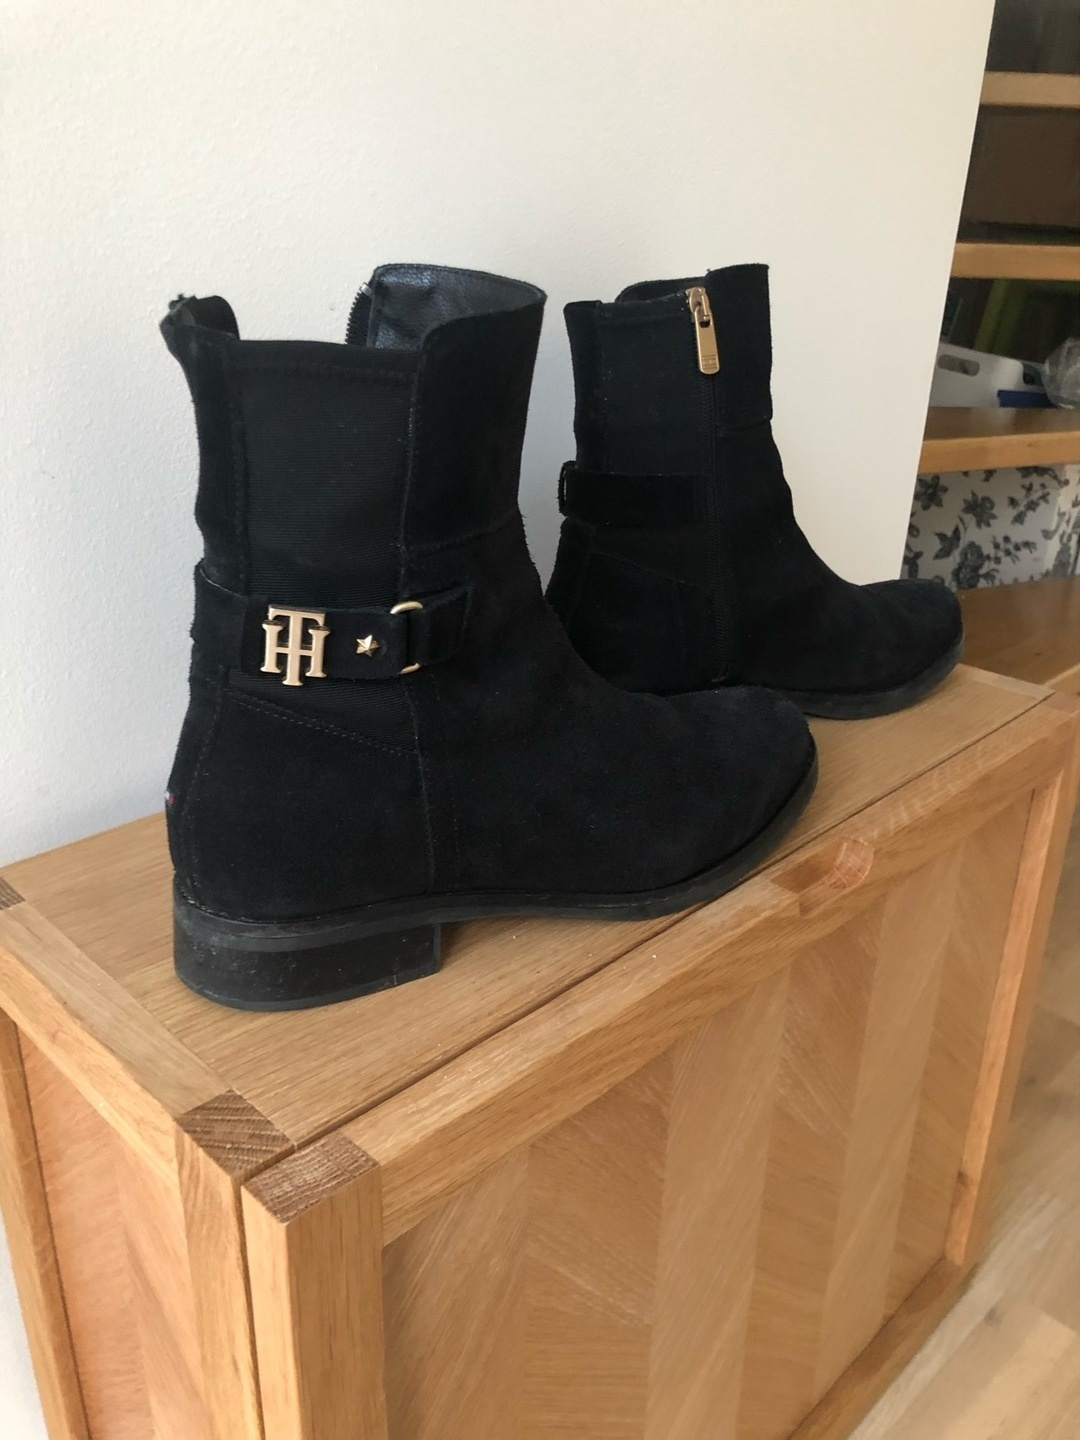 Women's boots - TOMMY HILFIGER photo 1